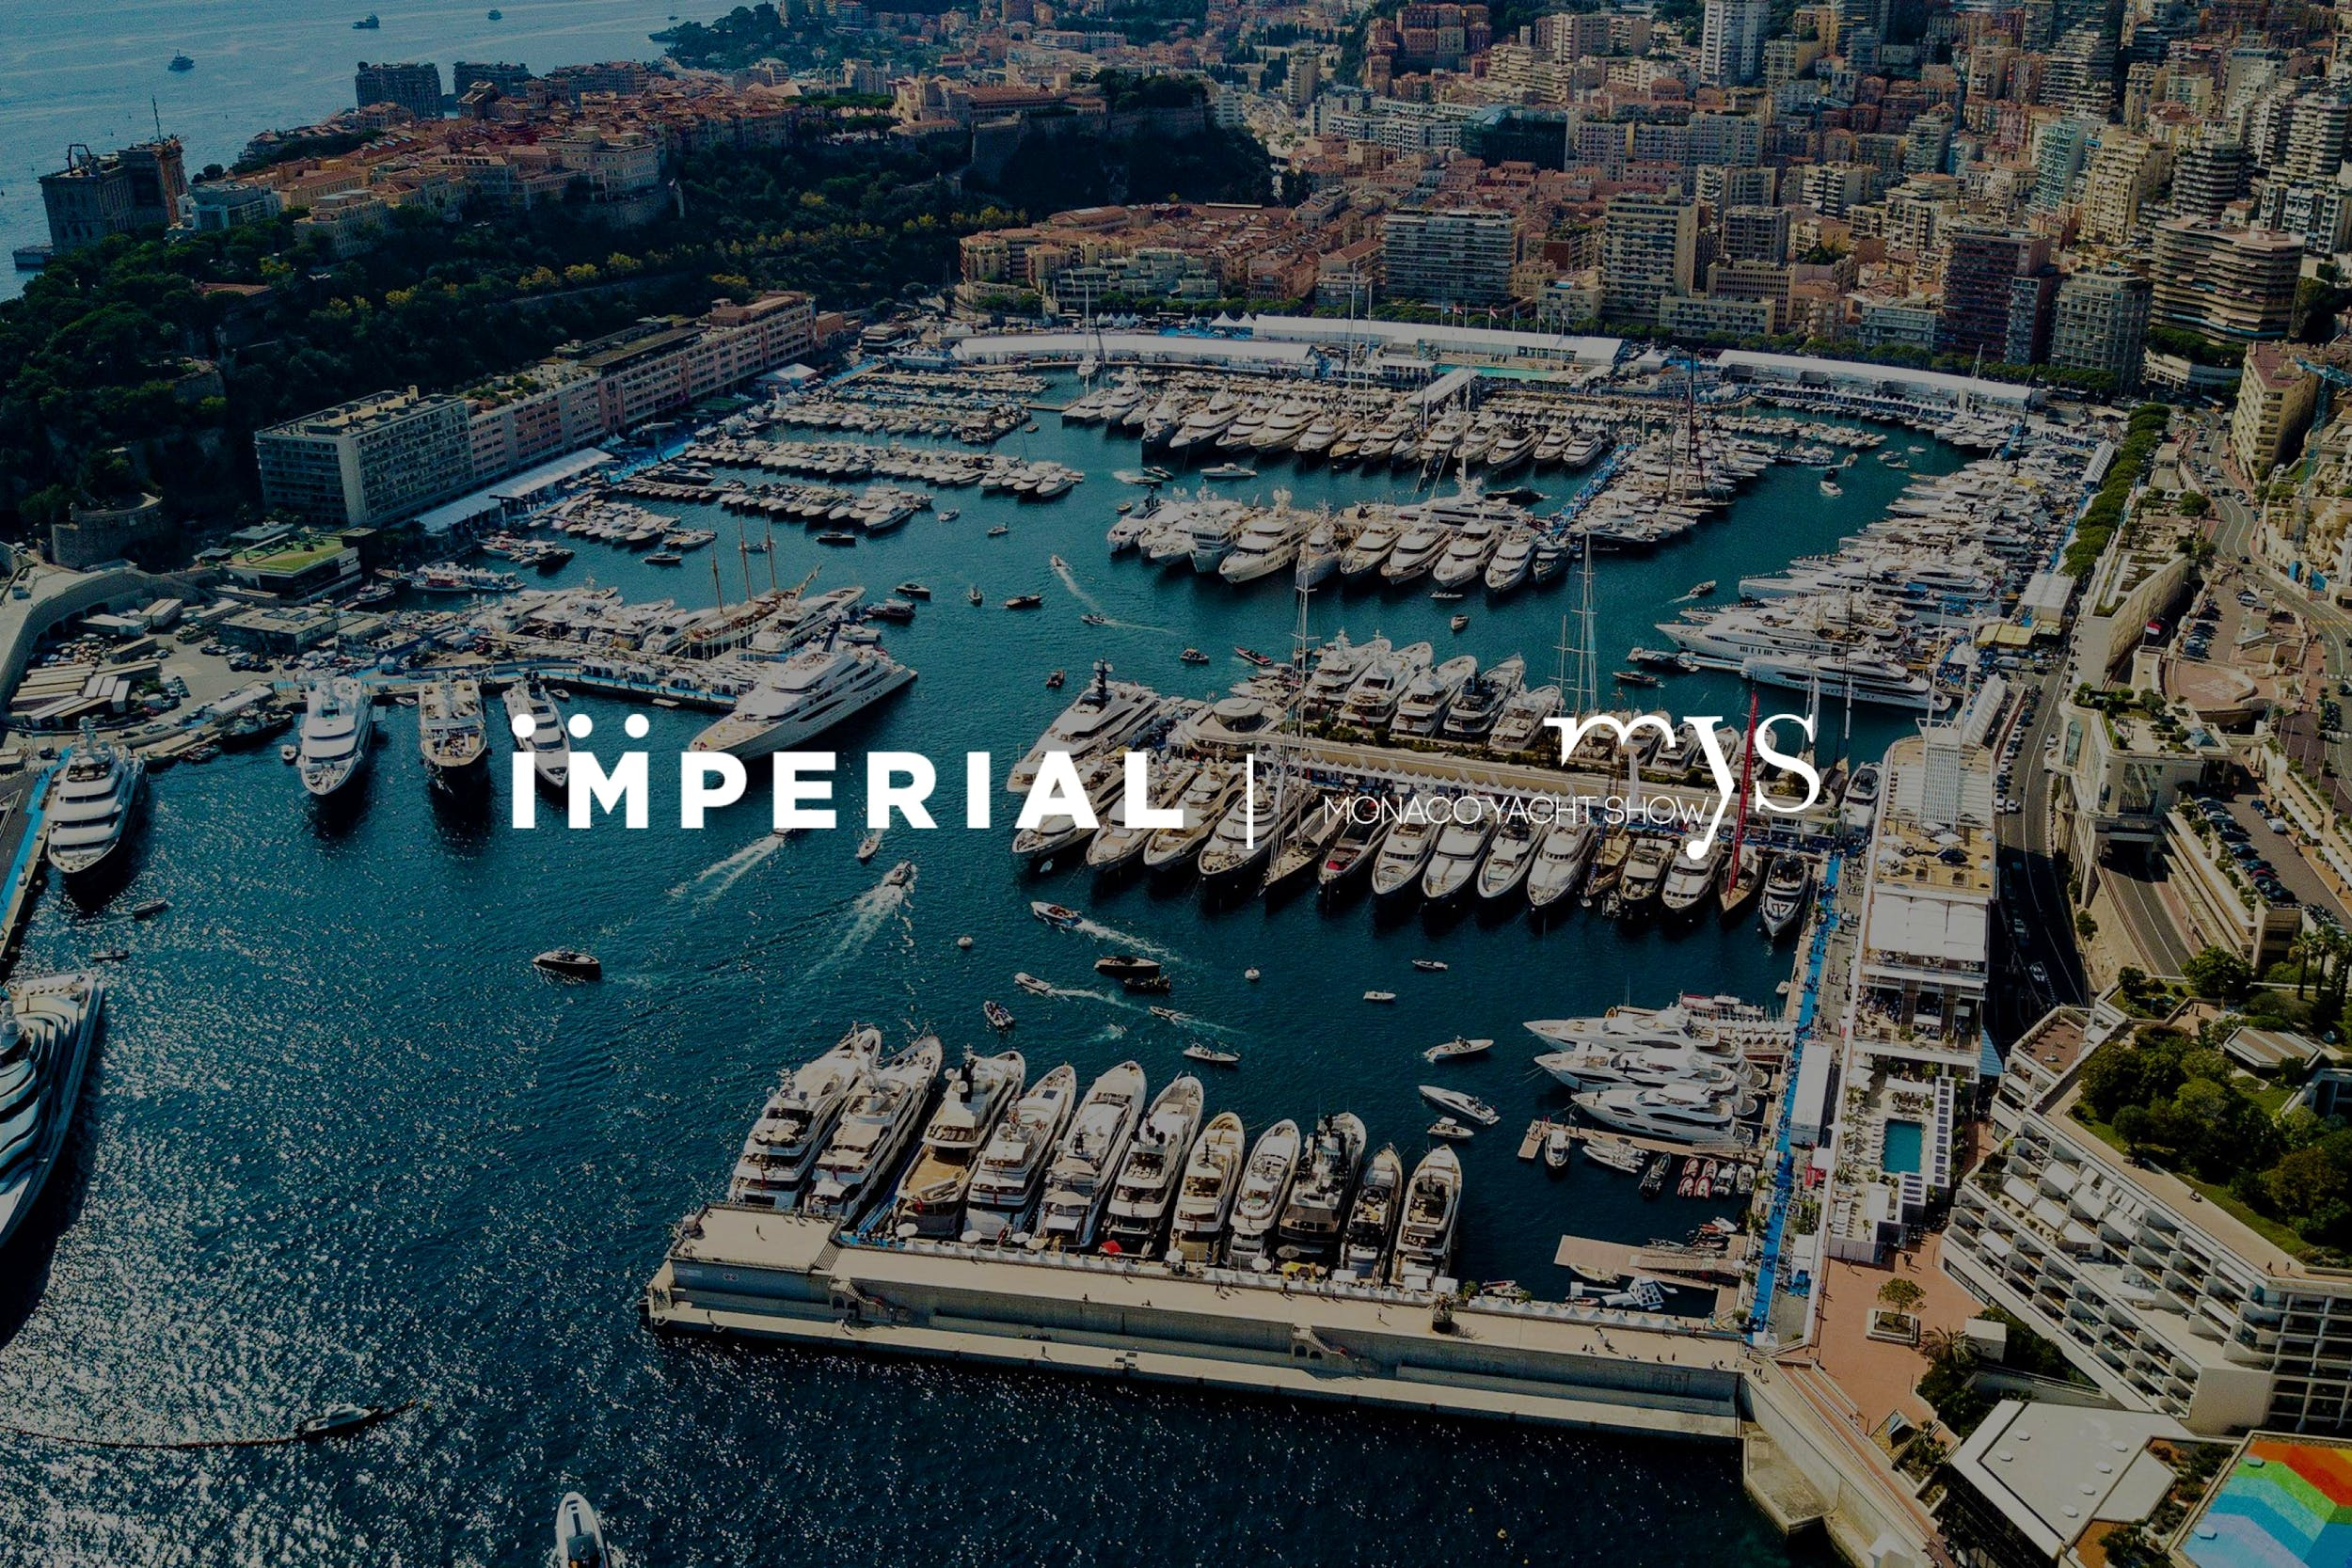 Imperial Attends Monaco Yacht Show 2021